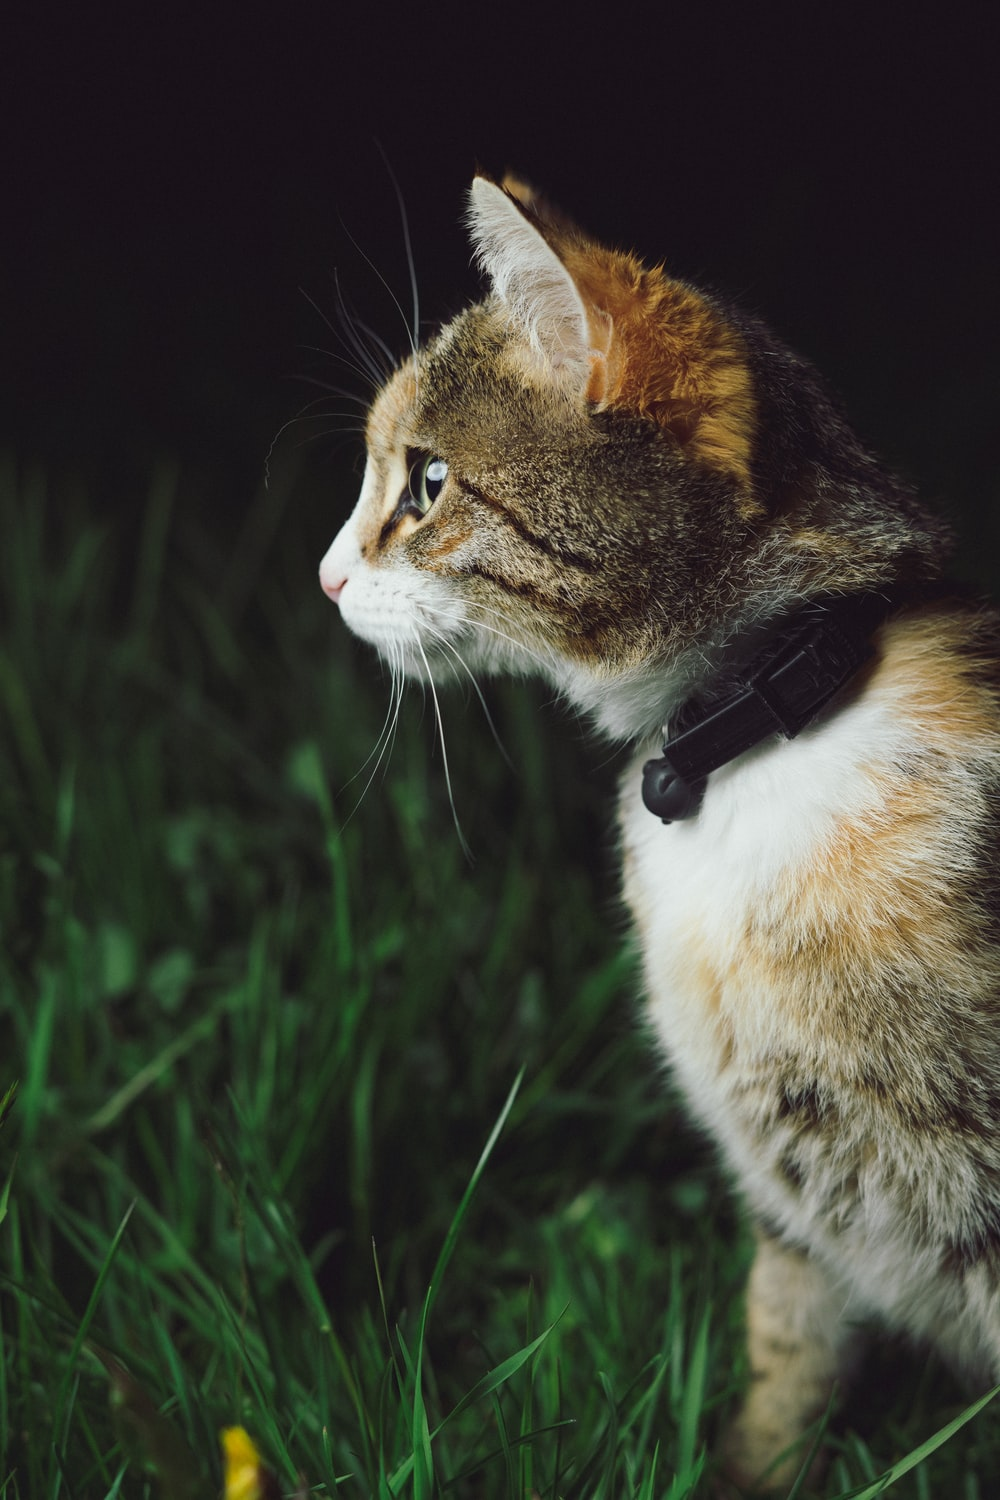 calico cat standing on grass field